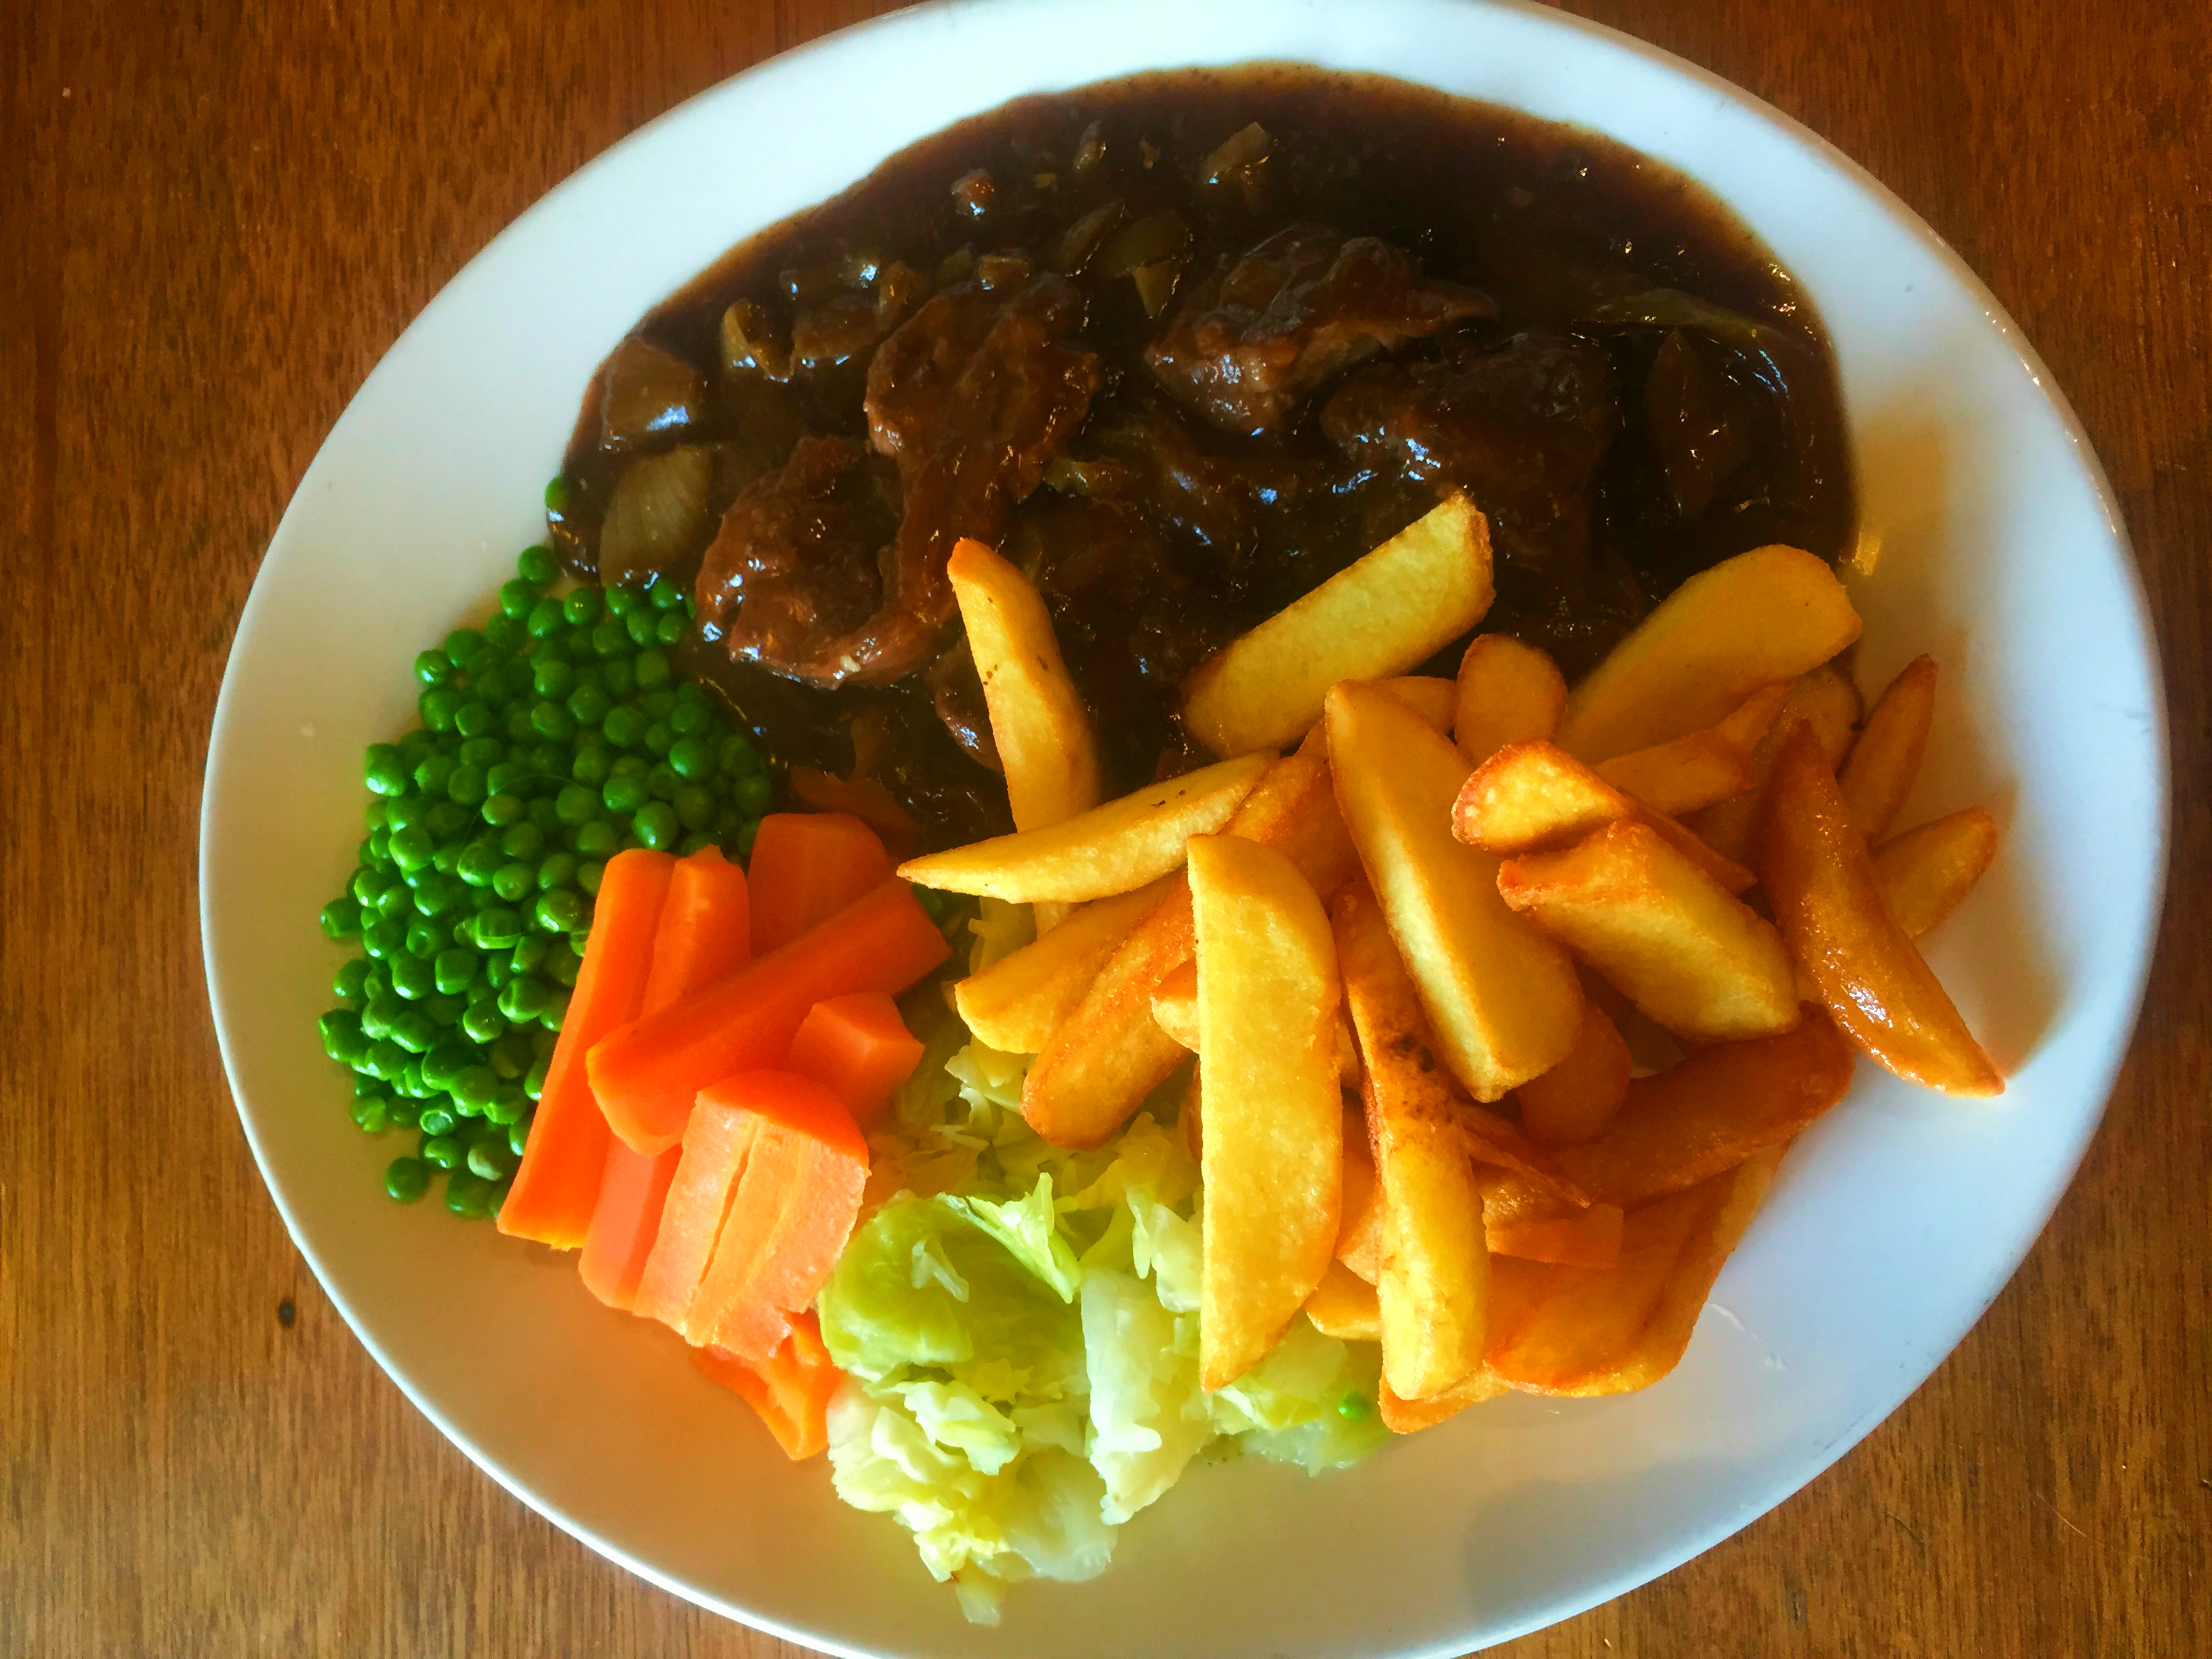 Braised Steak and Vegies